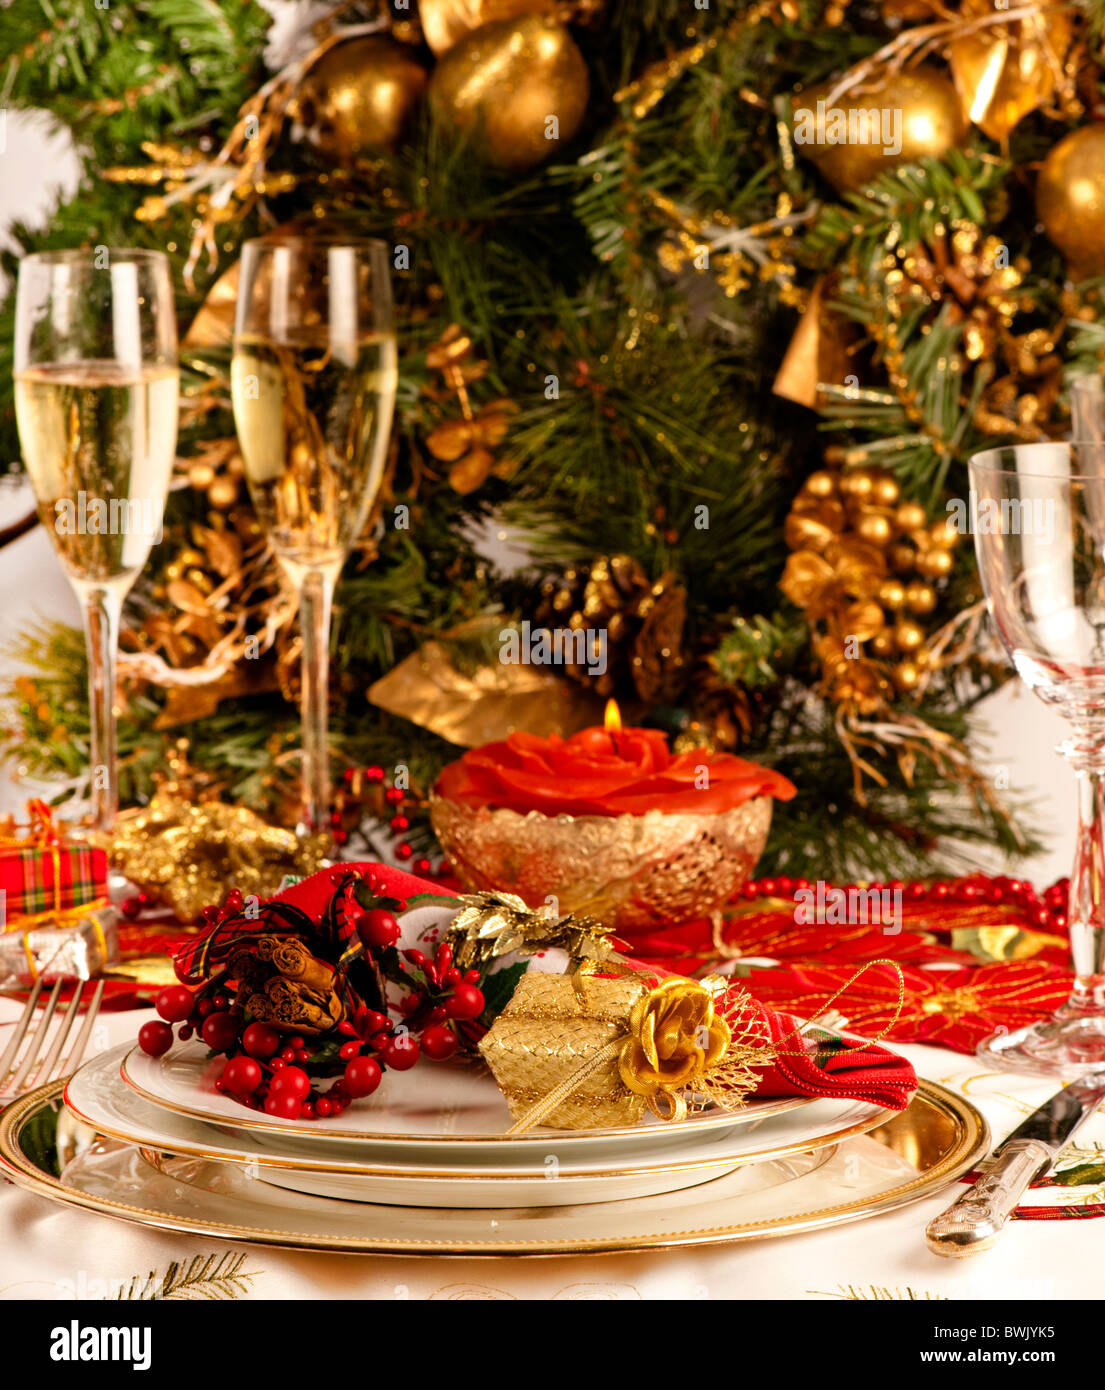 Christmas table setting with wine glass and two glasses of ch&agne Red and gold decorations and presents. & Christmas table setting with wine glass and two glasses of champagne ...